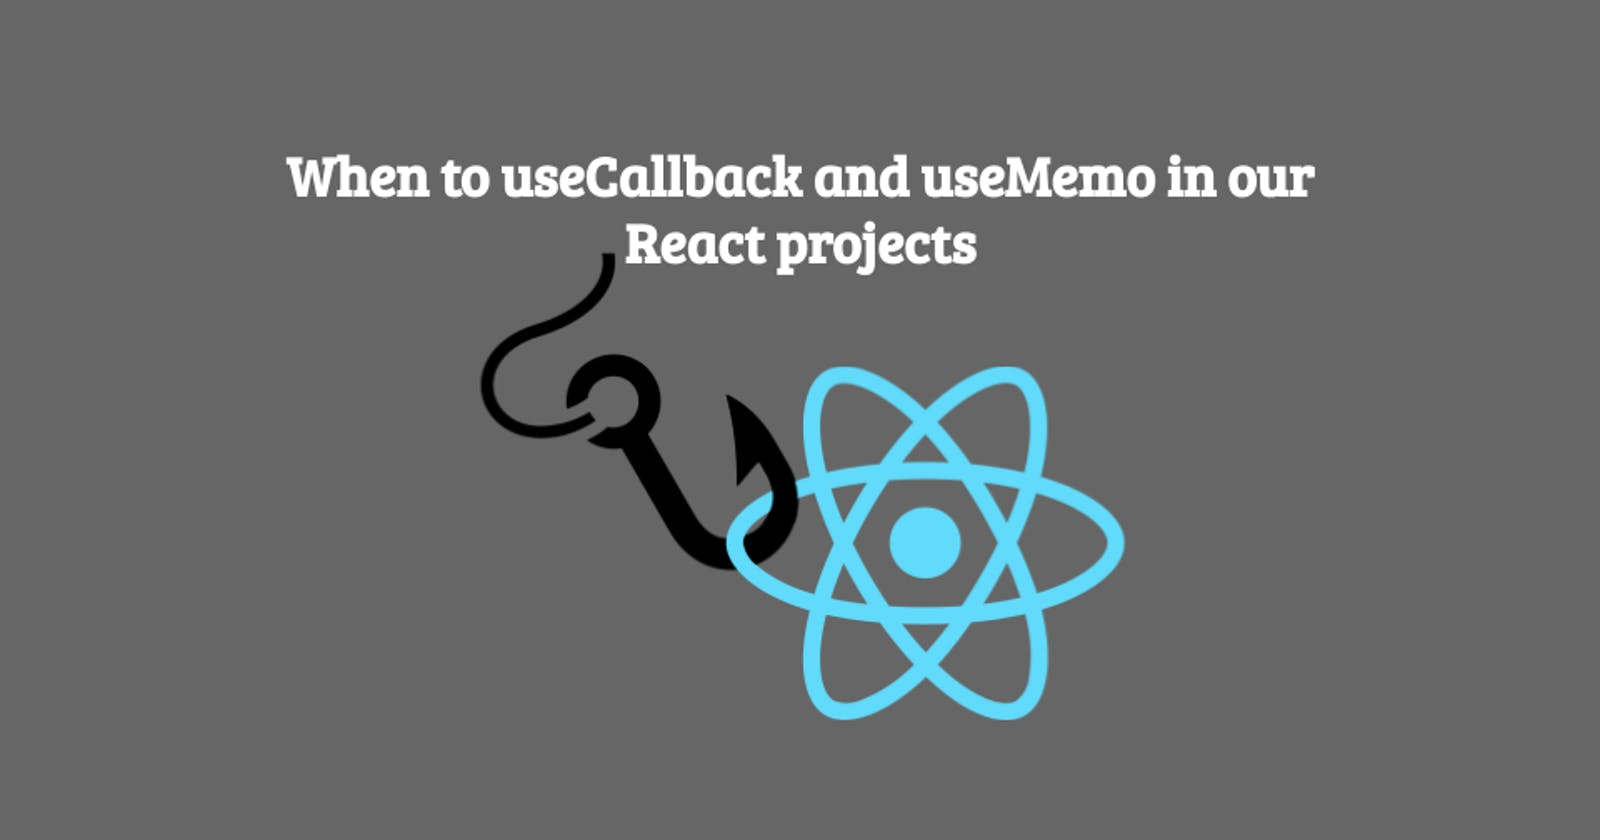 When to useCallback and useMemo in our React projects?